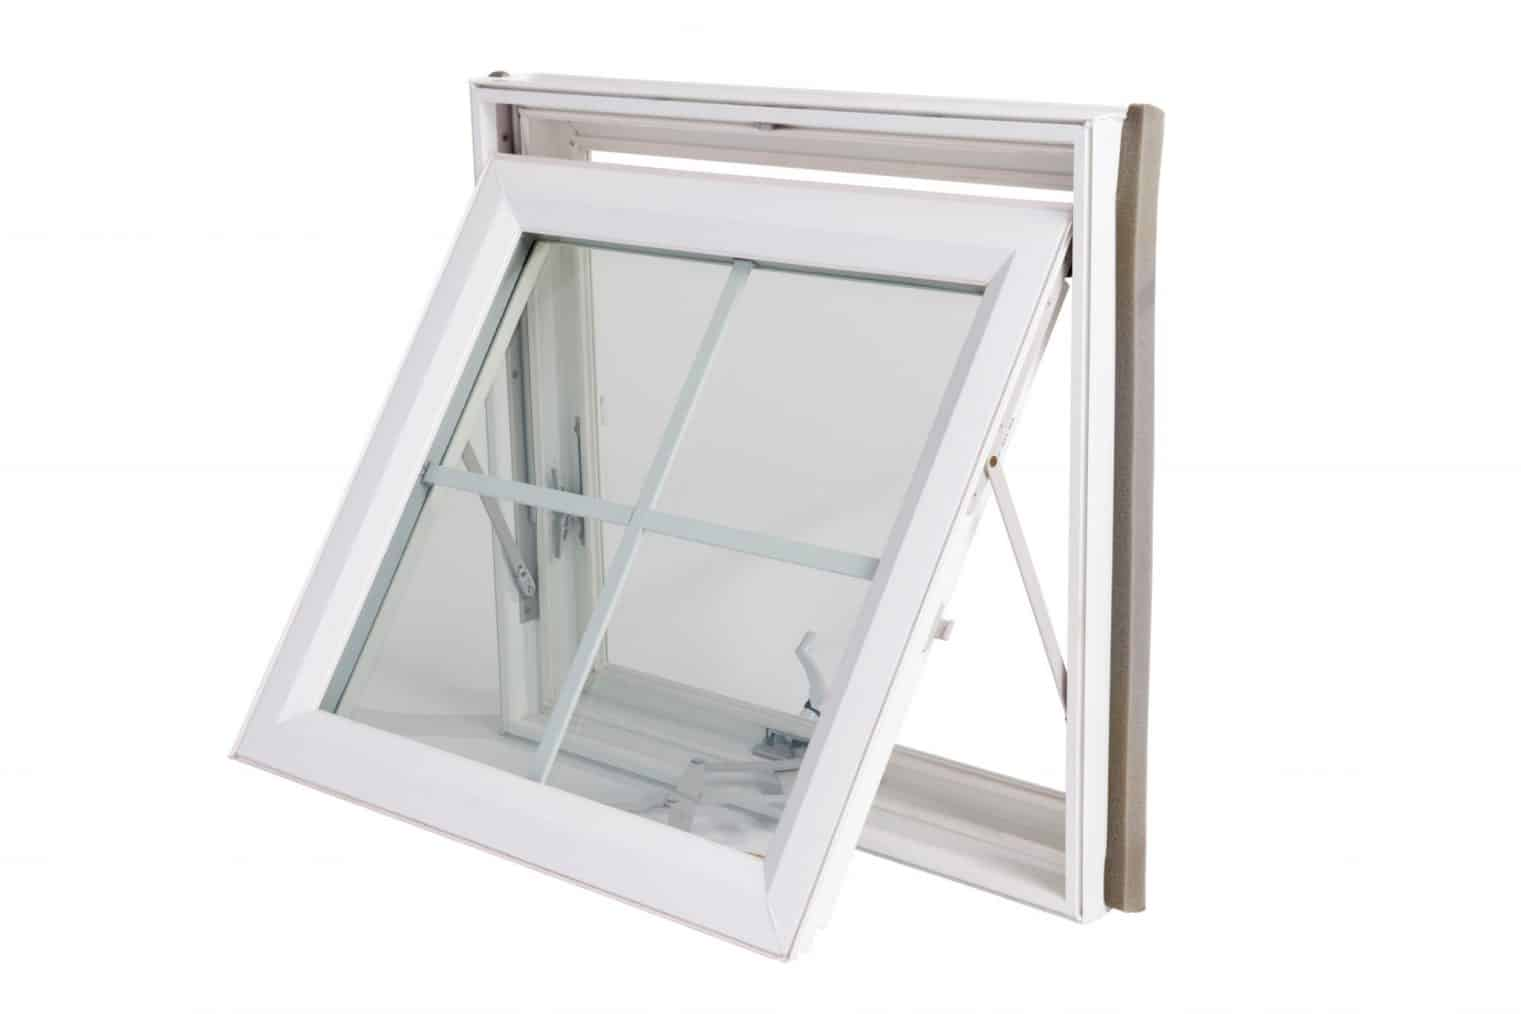 awning windows and hopper windows